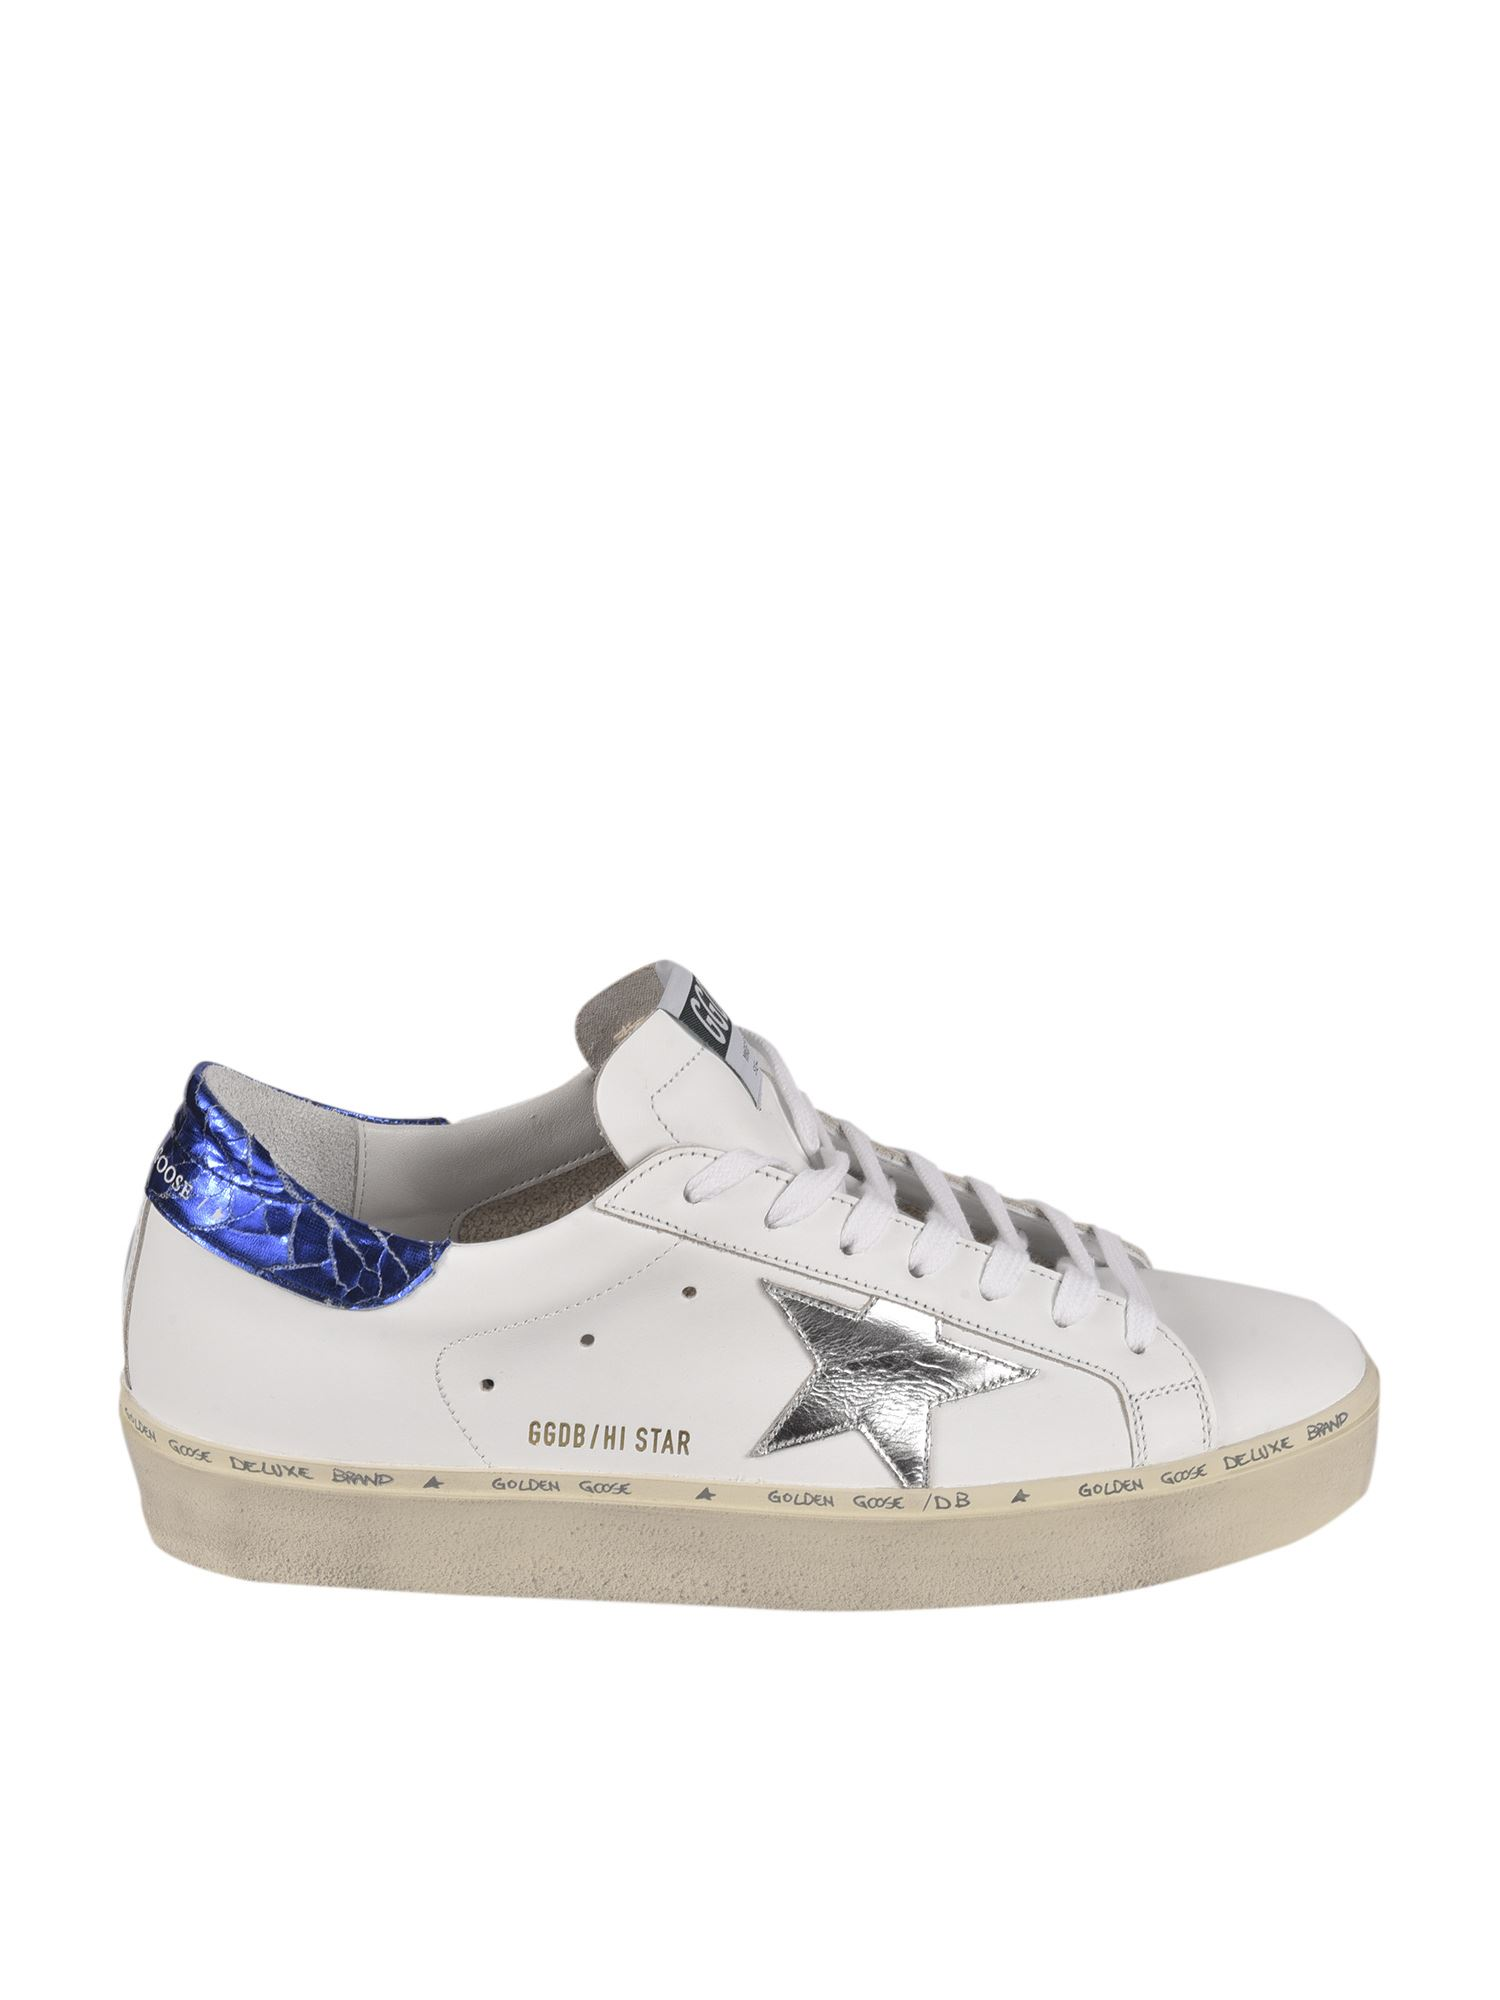 Golden Goose Leathers HI STAR CLASSIC SNEAKERS IN WHITE AND BLUE